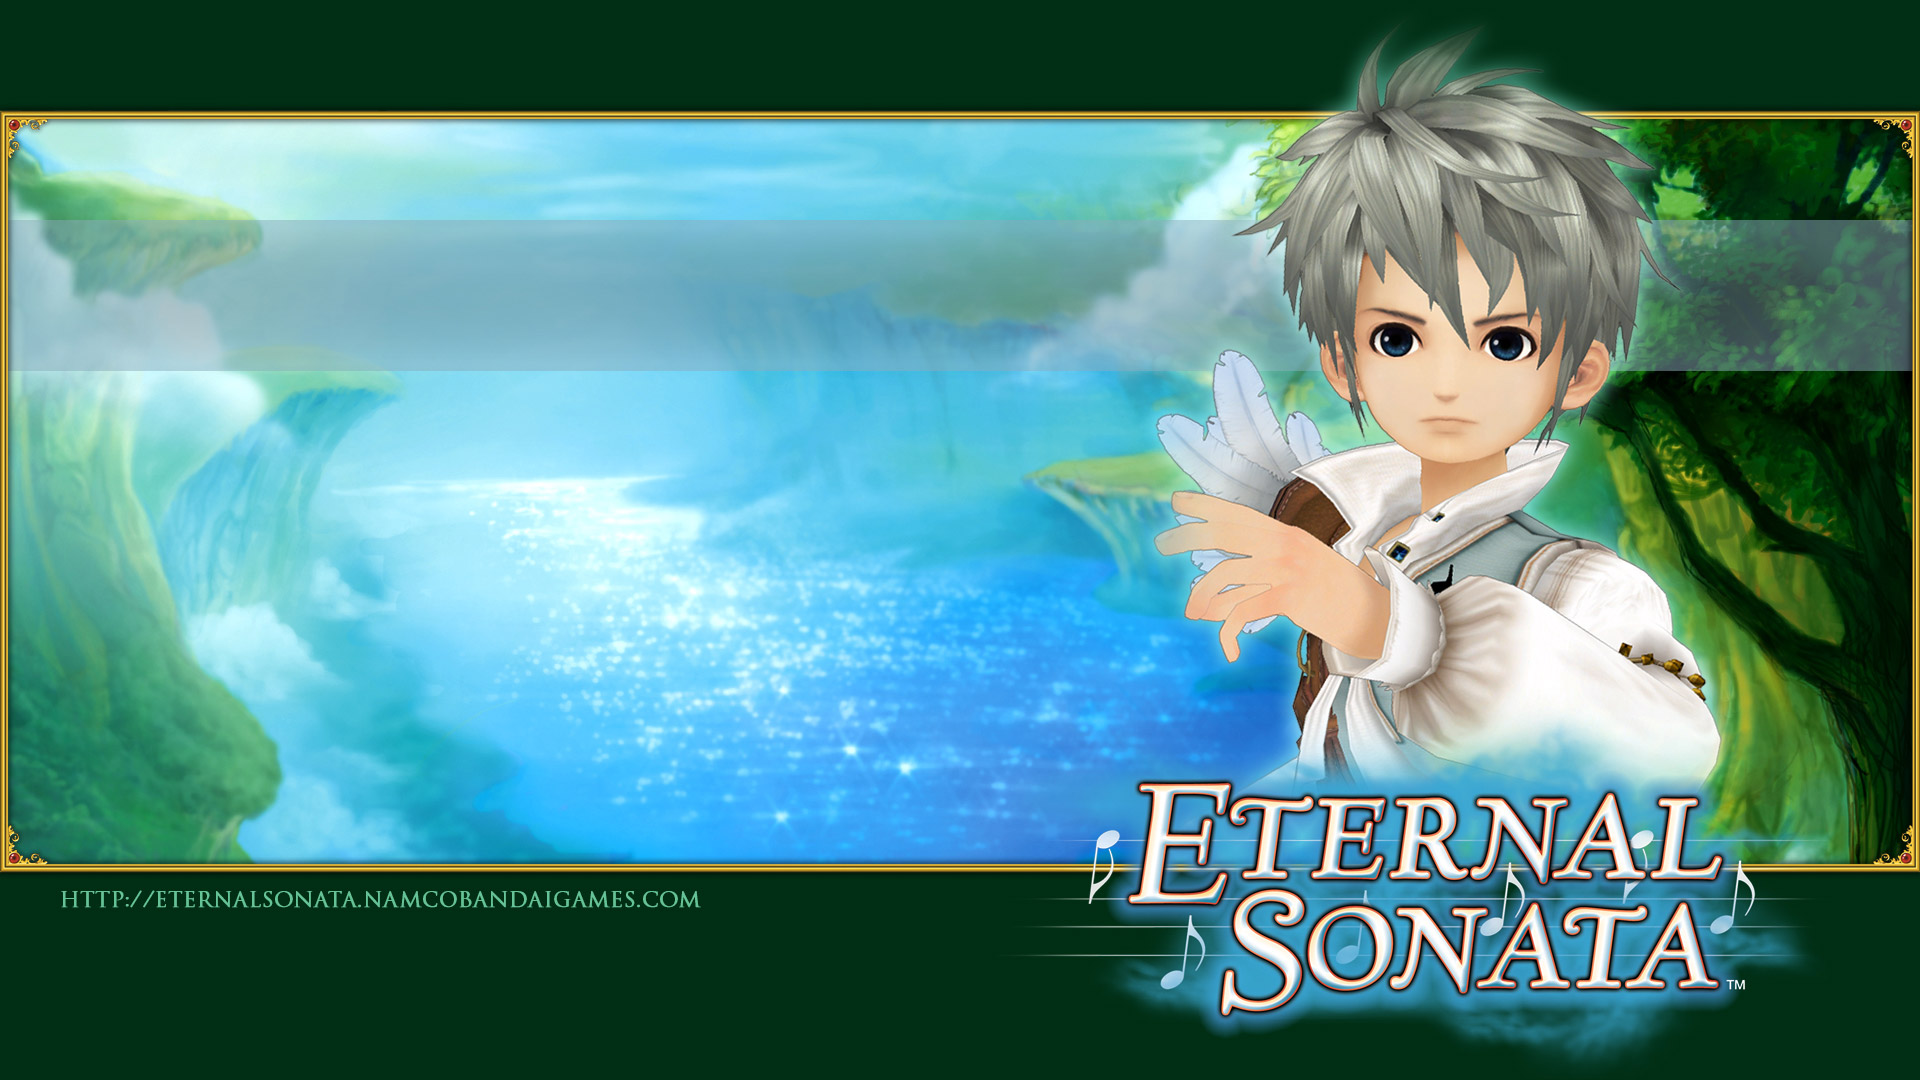 Eternal Sonata Wallpaper in 1920x1080